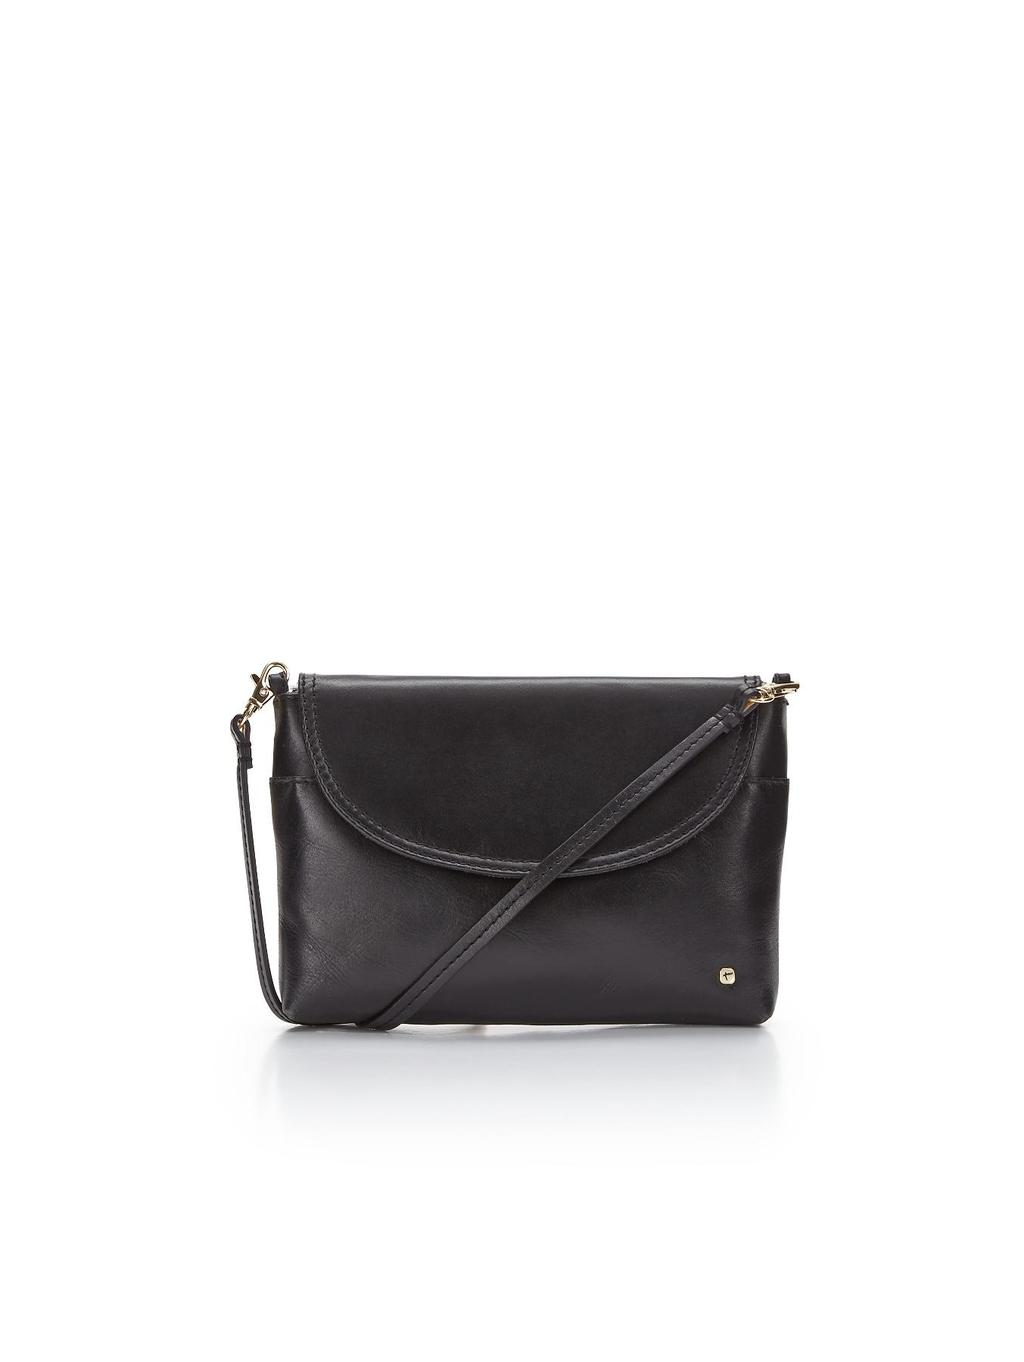 Crossbody Bag, Black - predominant colour: black; occasions: casual, work, creative work; style: messenger; length: across body/long; size: standard; material: faux leather; pattern: plain; finish: plain; season: s/s 2014